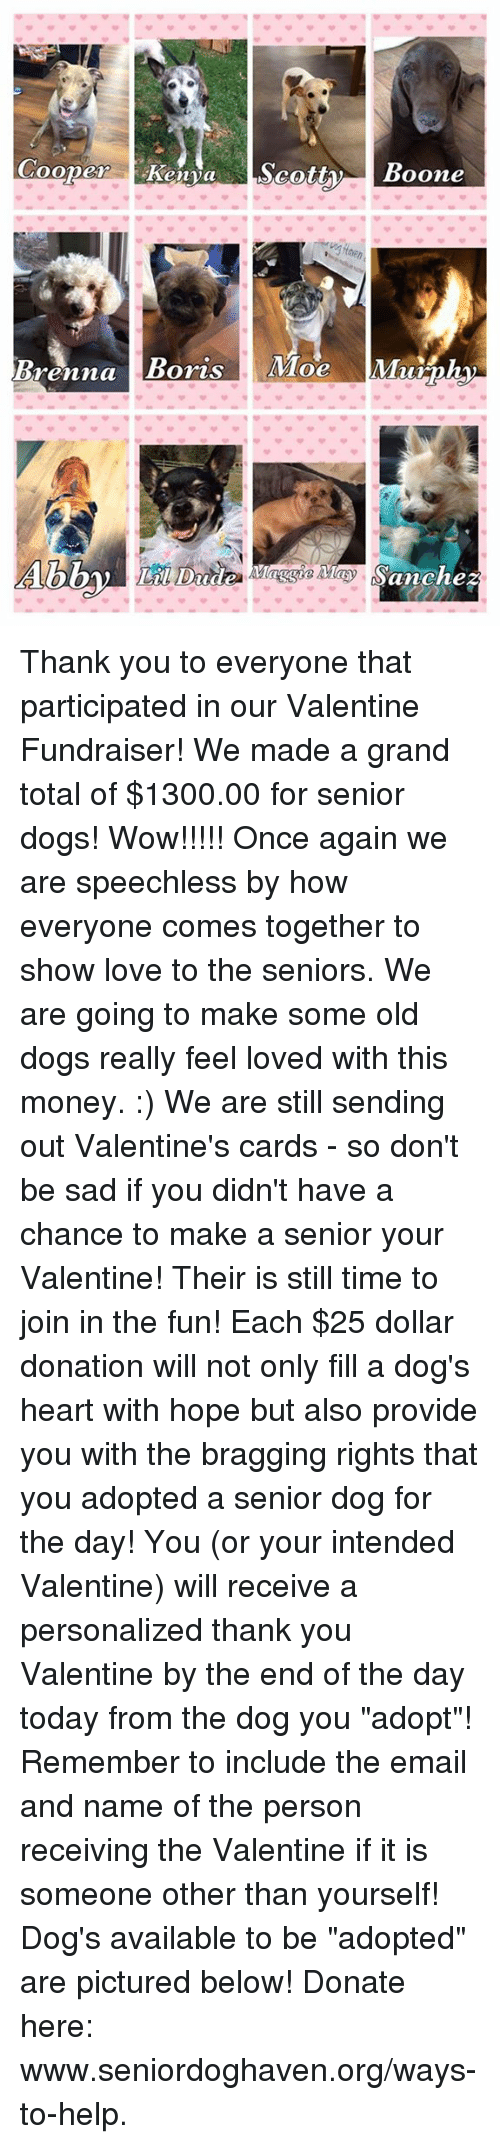 """Memes, Moe., and The Day Today: Cooper Kenya  Scotty  Boone  Brenna  Boris  Moe  Munnha  Sanchez Thank you to everyone that participated in our Valentine Fundraiser! We made a grand total of $1300.00 for senior dogs! Wow!!!!! Once again we are speechless by how everyone comes together to show love to the seniors. We are going to make some old dogs really feel loved with this money. :)  We are still sending out Valentine's cards - so don't be sad if you didn't have a chance to make a senior your Valentine! Their is still time to join in the fun! Each $25 dollar donation will not only fill a dog's heart with hope but also provide you with the bragging rights that you adopted a senior dog for the day! You (or your intended Valentine) will receive a personalized thank you Valentine by the end of the day today from the dog you """"adopt""""! Remember to include the email and name of the person receiving the Valentine if it is someone other than yourself!  Dog's available to be """"adopted"""" are pictured below! Donate here: www.seniordoghaven.org/ways-to-help."""